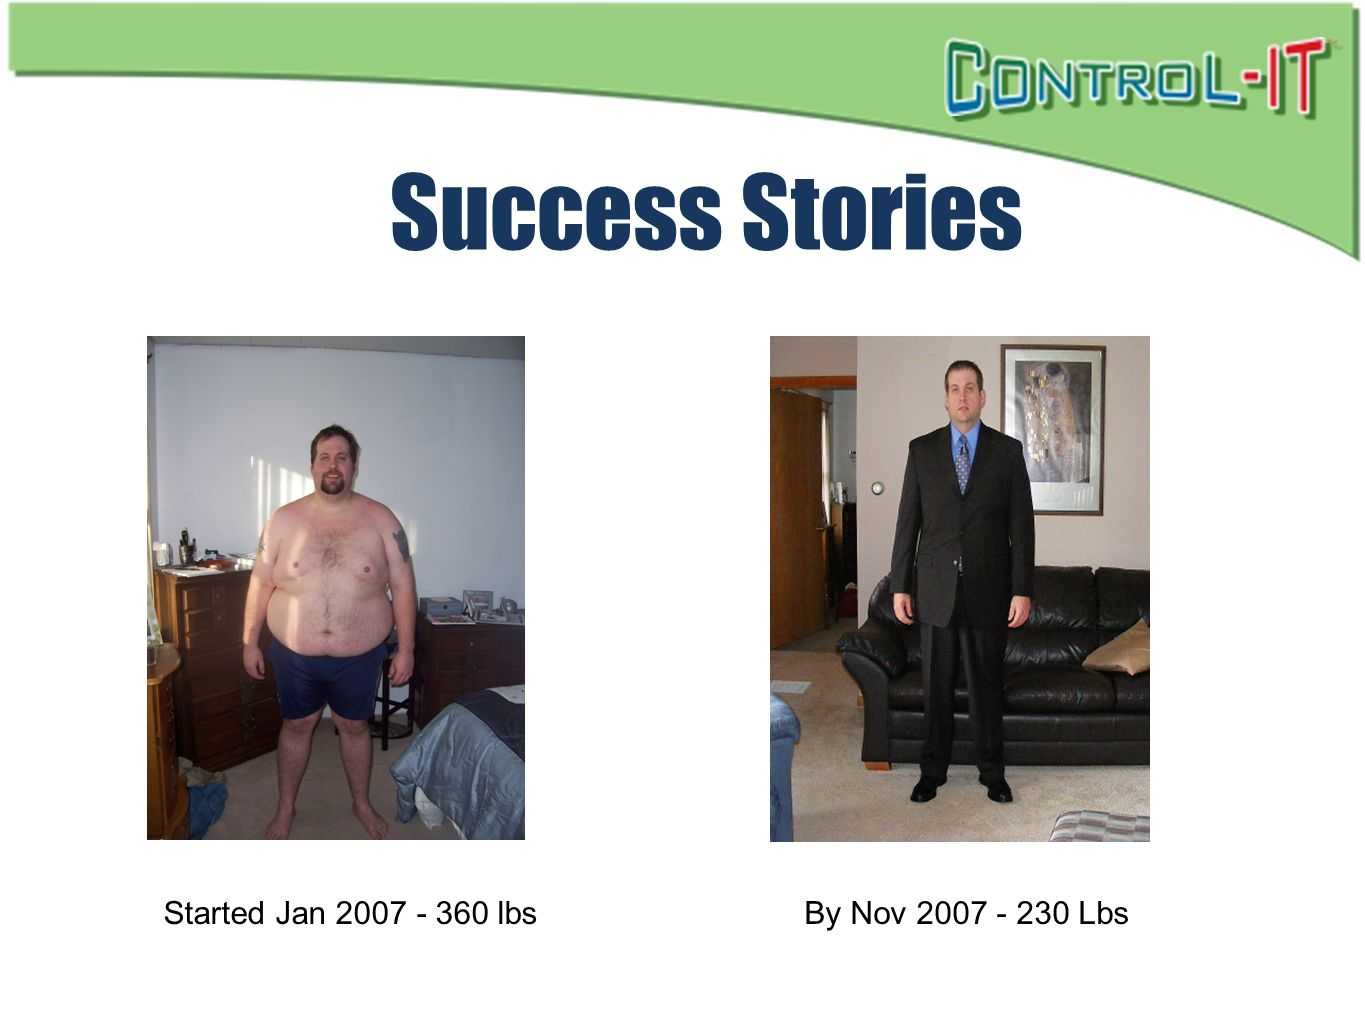 Success Stories Started Jan 2007 - 360 lbs By Nov 2007 - 230 Lbs